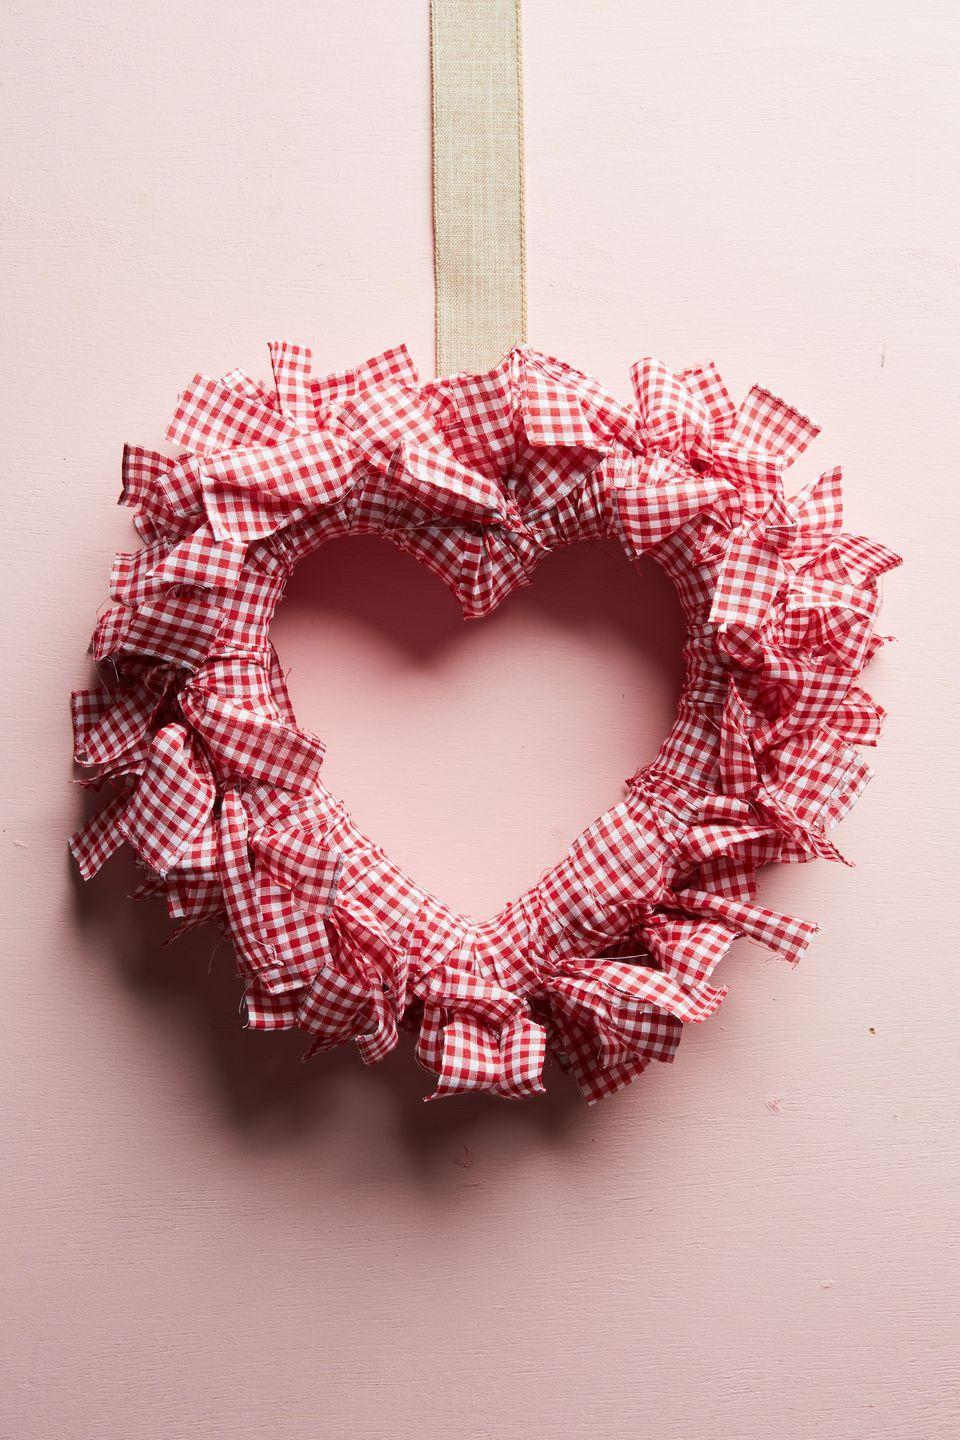 """<p>Hang this cheerful gingham-wrapped wreath on the front door or over a headboard.</p><p><a class=""""link rapid-noclick-resp"""" href=""""https://www.amazon.com/Richland-Textiles-Width-Gingham-Fabric/dp/B01D237W8O/ref=sr_1_2?tag=syn-yahoo-20&ascsubtag=%5Bartid%7C10050.g.2971%5Bsrc%7Cyahoo-us"""" rel=""""nofollow noopener"""" target=""""_blank"""" data-ylk=""""slk:SHOP GINGHAM FABRIC"""">SHOP GINGHAM FABRIC</a></p>"""